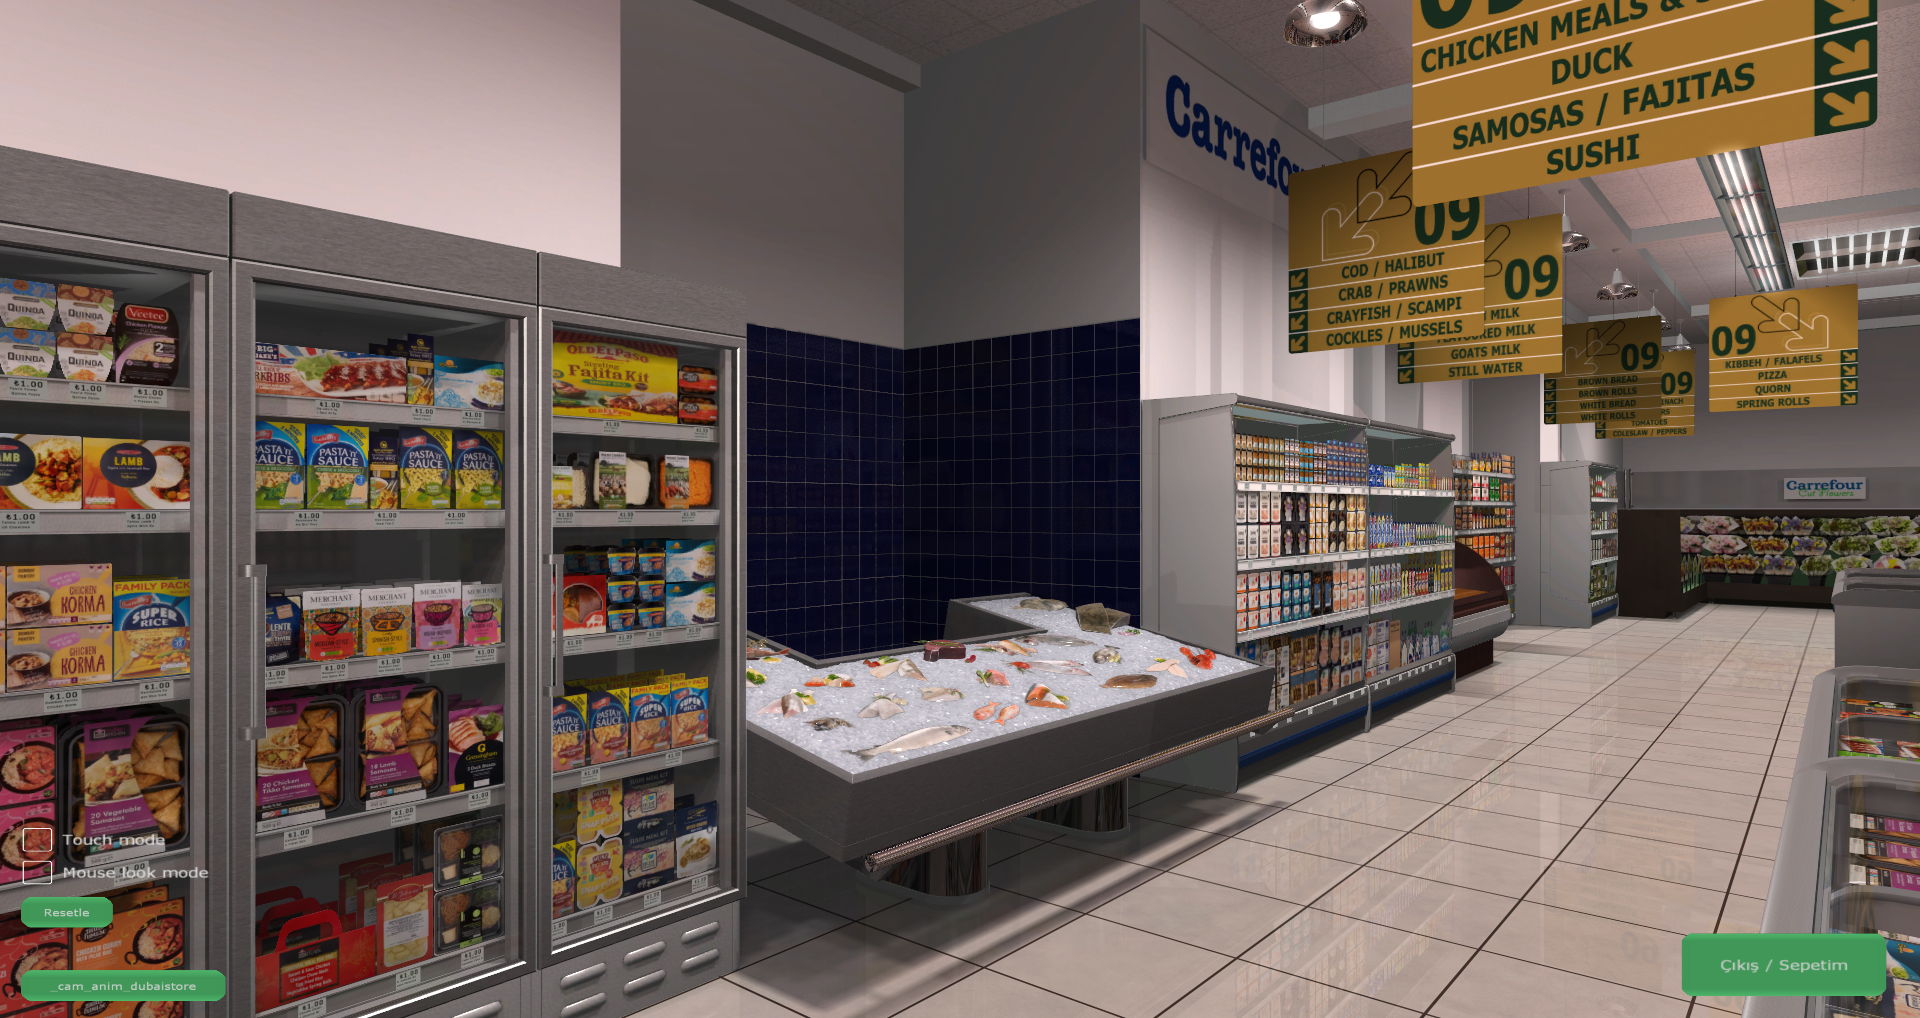 3D Shopping Virtual Store Screenshot from Carrefour VR Supermarket 6